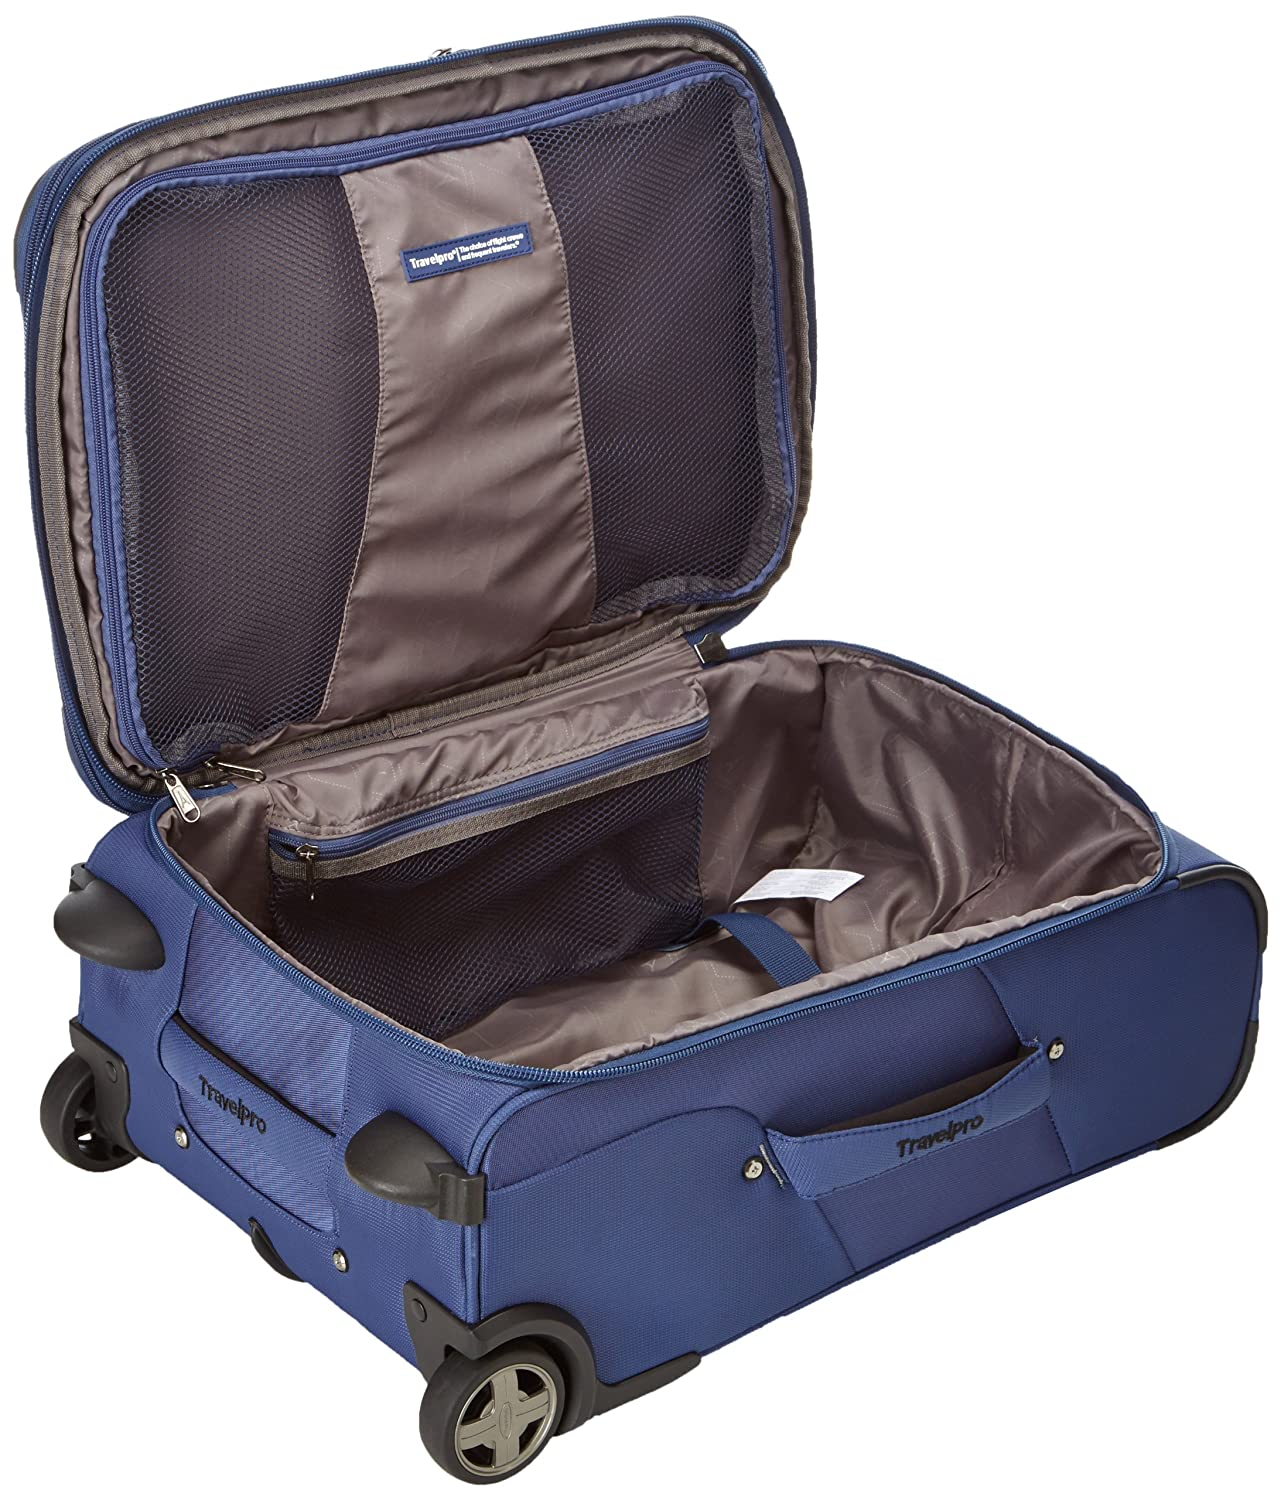 c2fa58b58 Amazon.com | Travelpro Luggage Maxlite3 22 Inch Expandable Rollaboard, Blue,  One Size | Suitcases